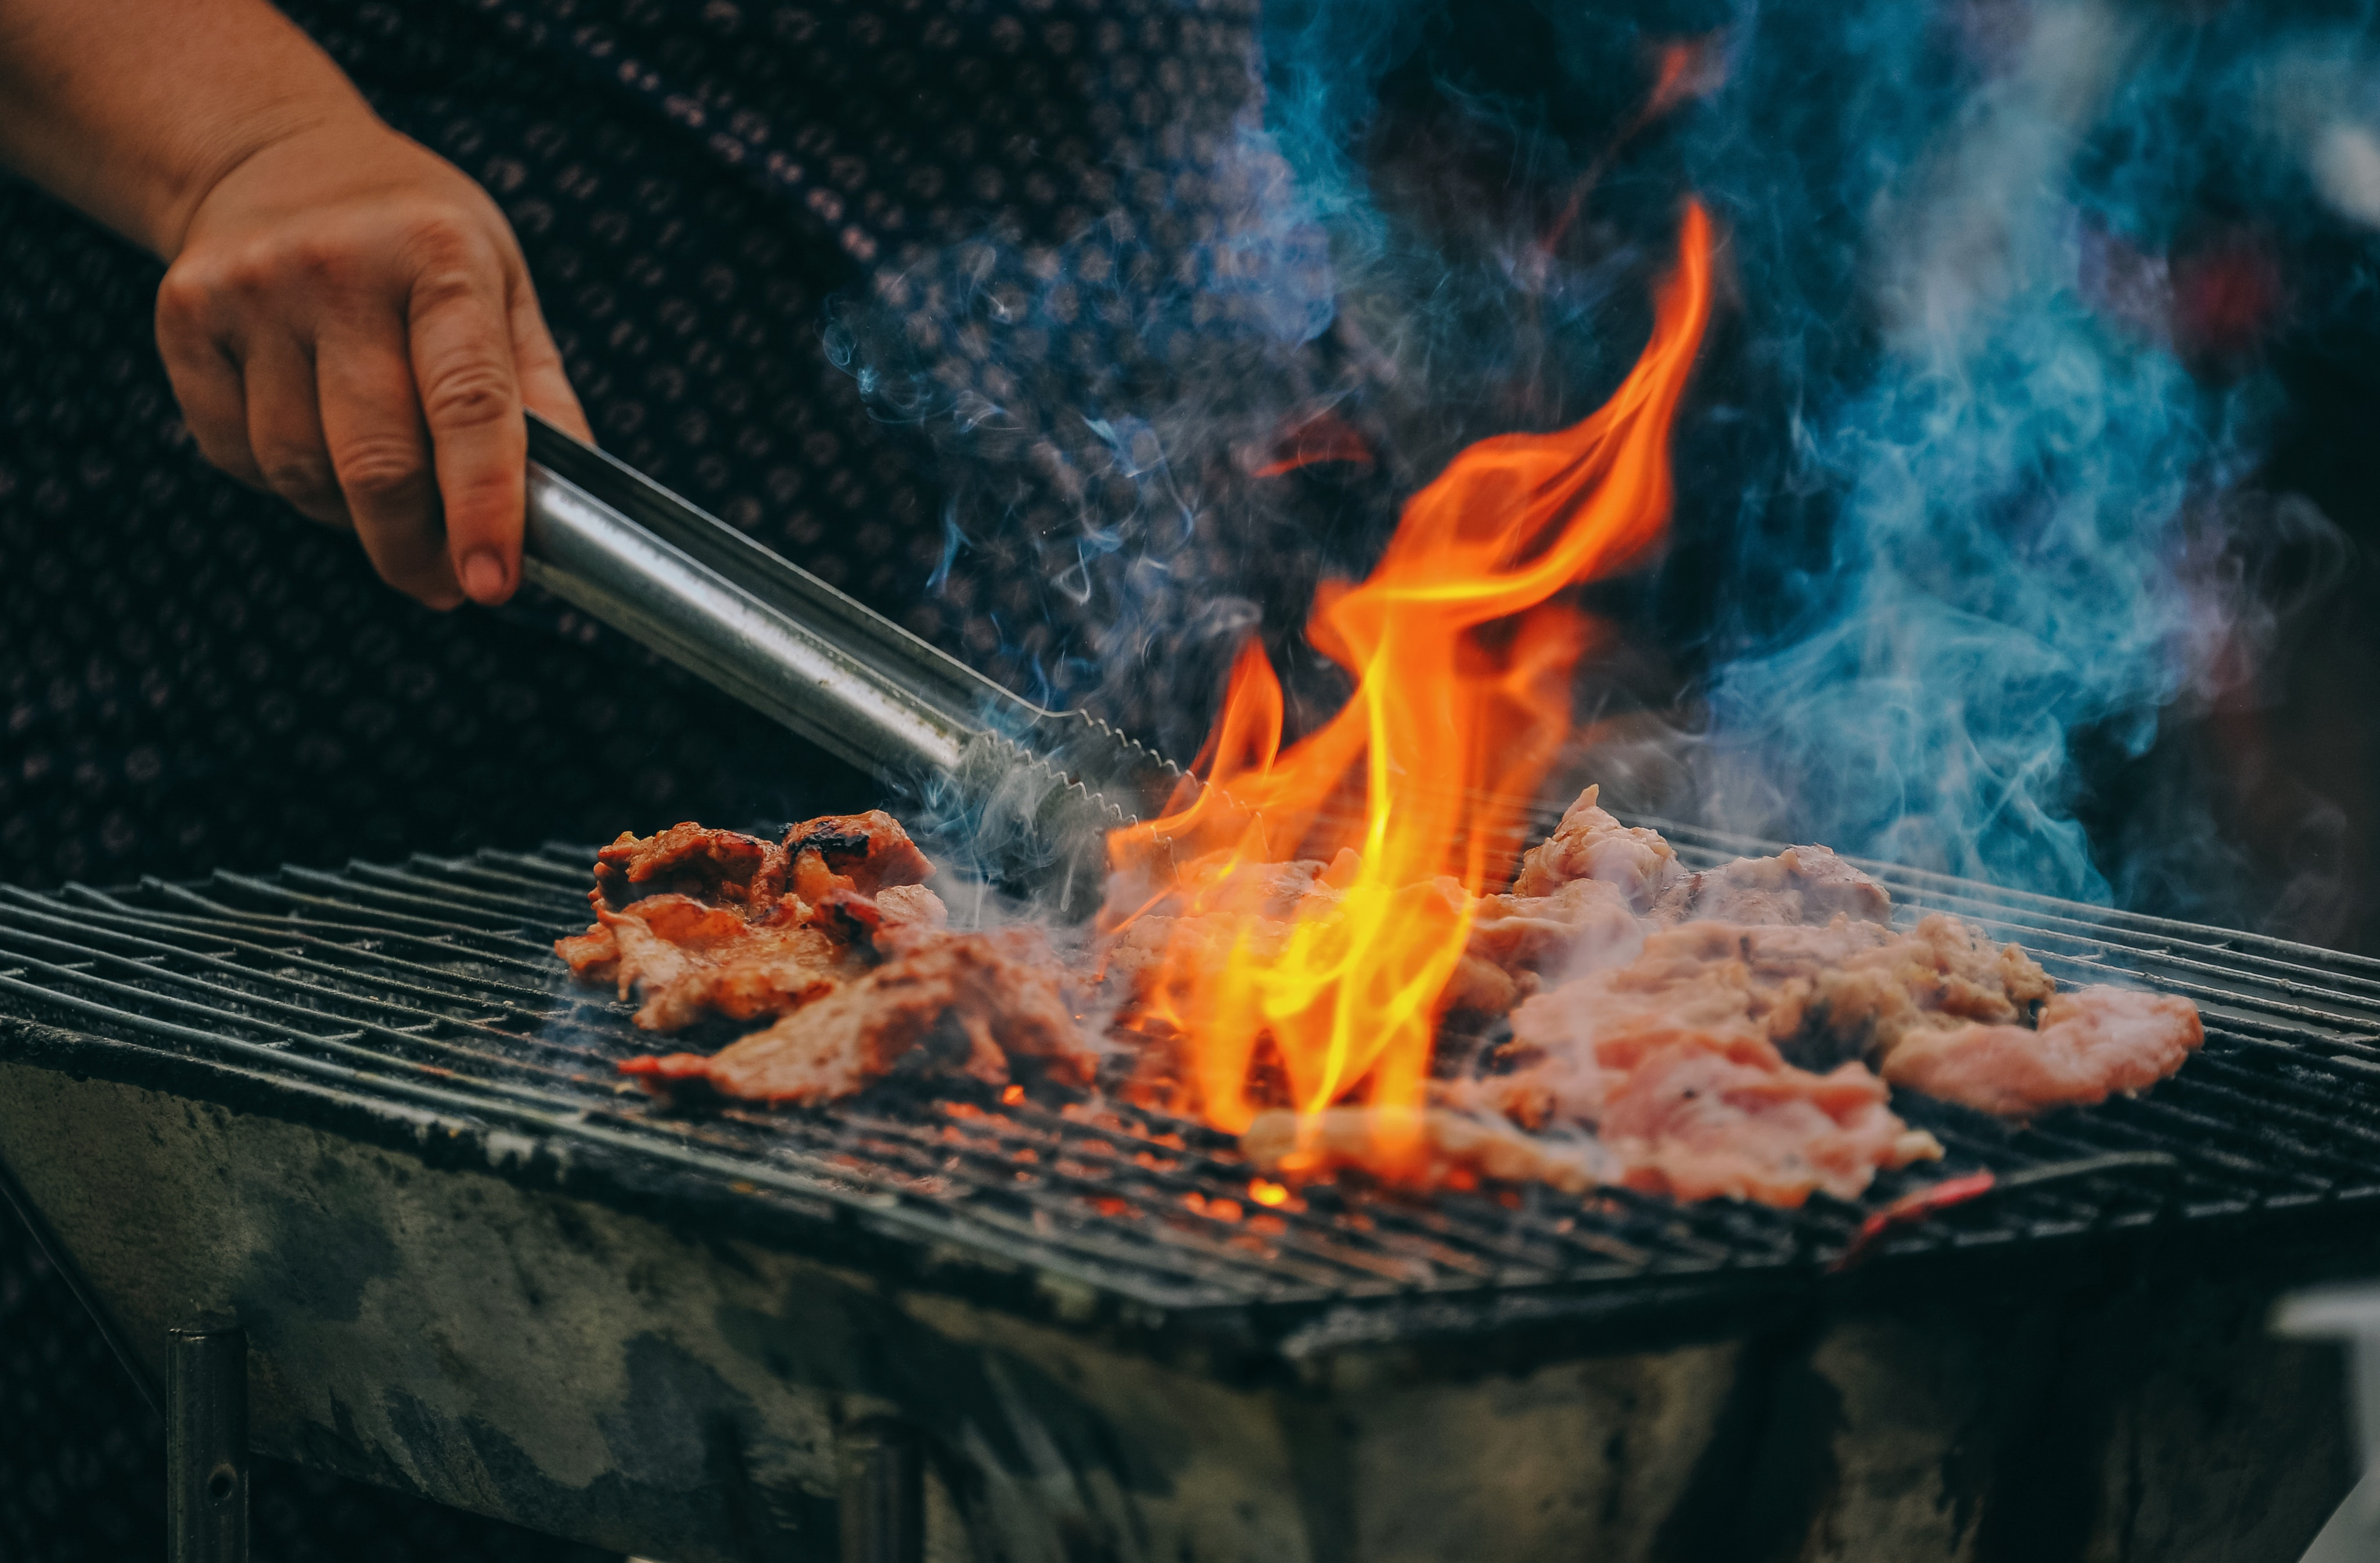 close-up-photo-of-man-cooking-meat-1482803